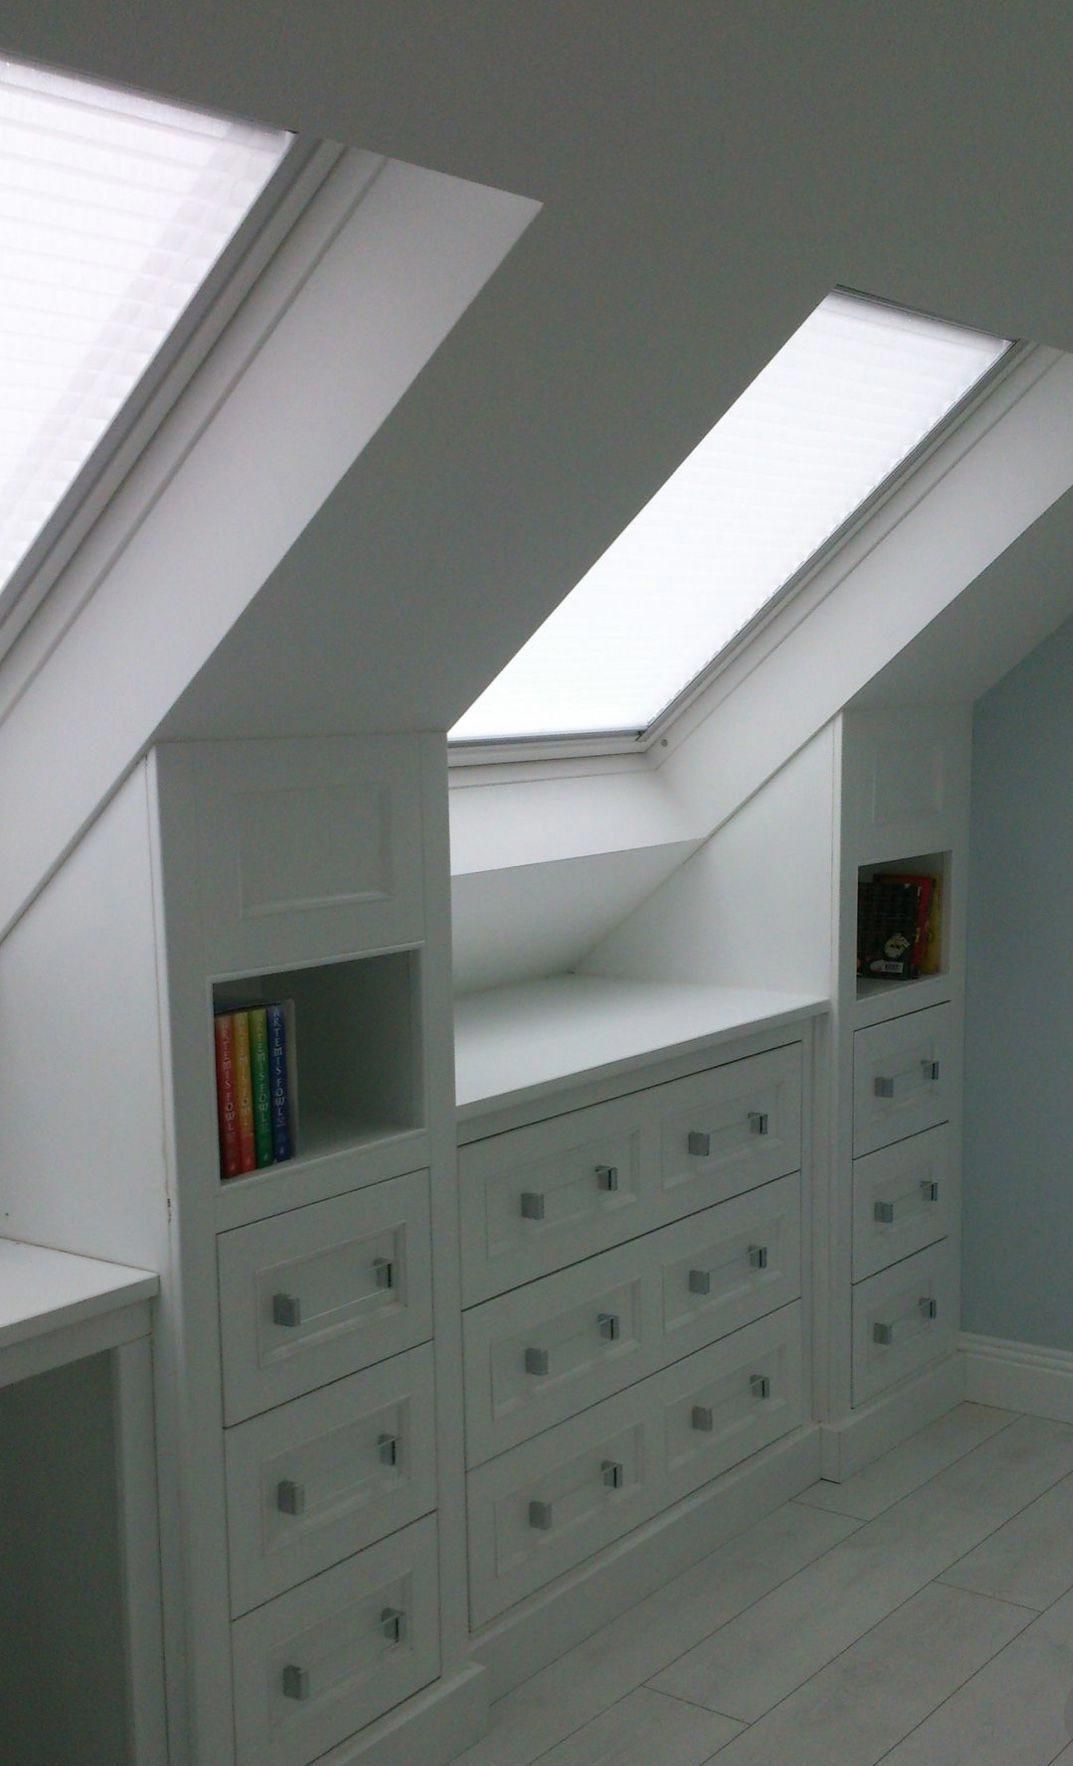 Attic Room Ideas Slanted Walls Bedrooms Small Attic Room Ideas Reading Low Ceiling For Teens Diy Kids Conve Small Attic Room Slanted Walls Loft Storage